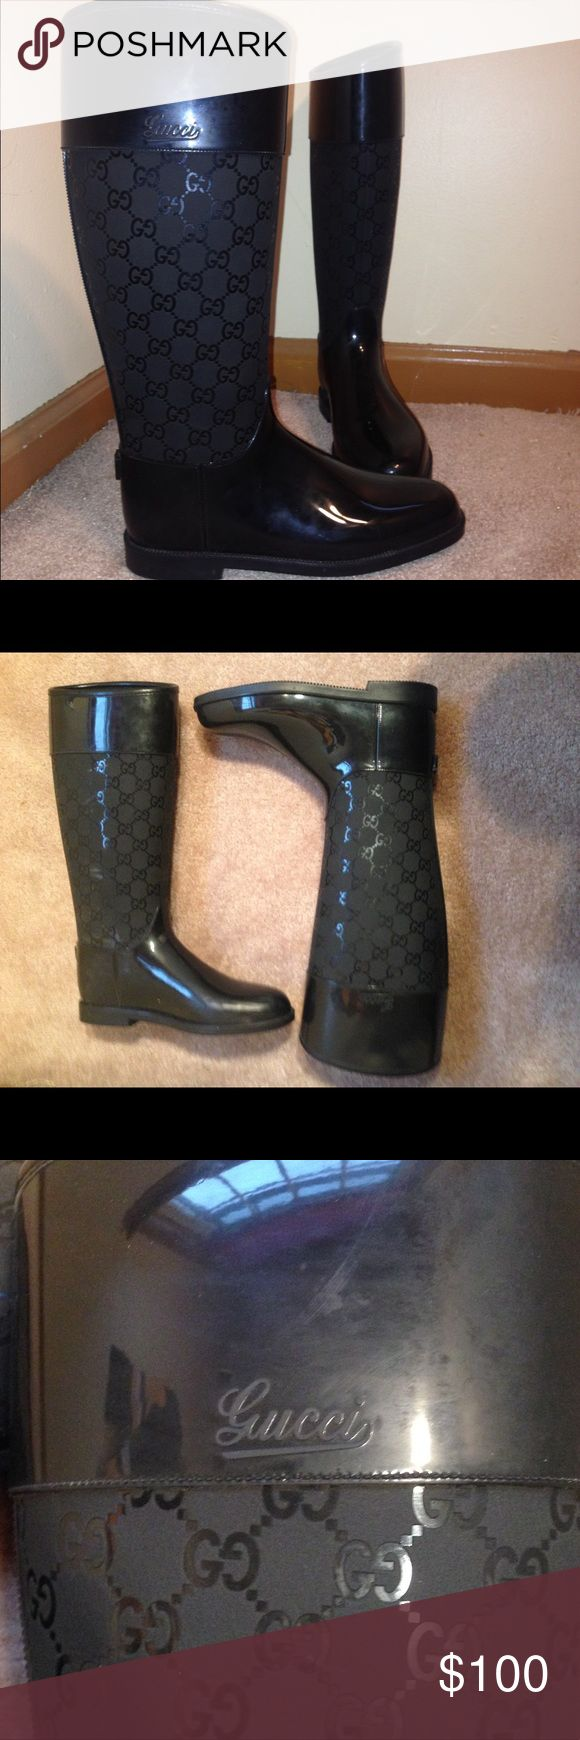 Female Gucci insulated rubber rain boots These Gucci boots are some seriously sleek looking boots! They're a size 36 which is about a 5.5-6 in women's shoe sizing. These boots are completely rubber which is perfect because you don't need to worry about leather in rain! They have a very nice insulation on the inside too! There's some scraping on the inner sides of the boots but other than that these are in great shape! Gucci Shoes Winter & Rain Boots